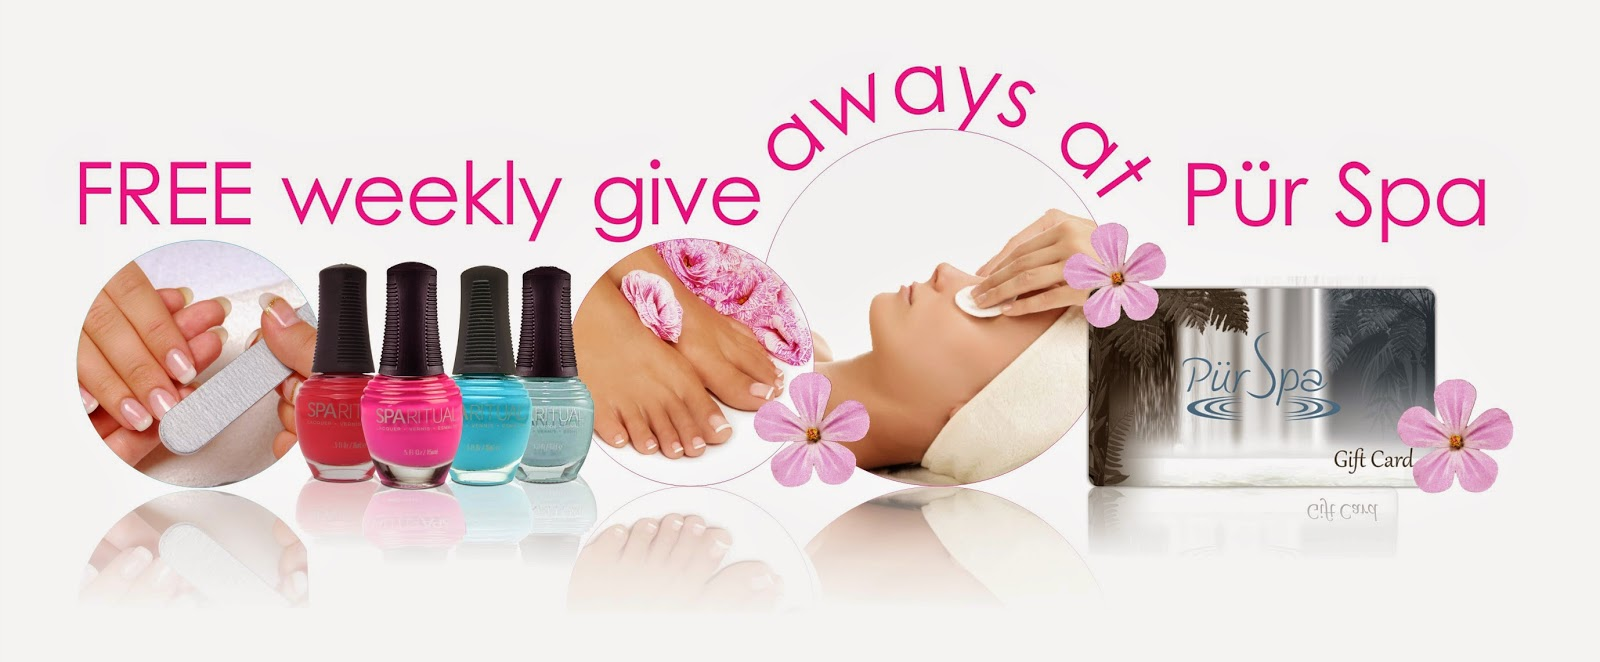 Pur spa weekly free give away banner